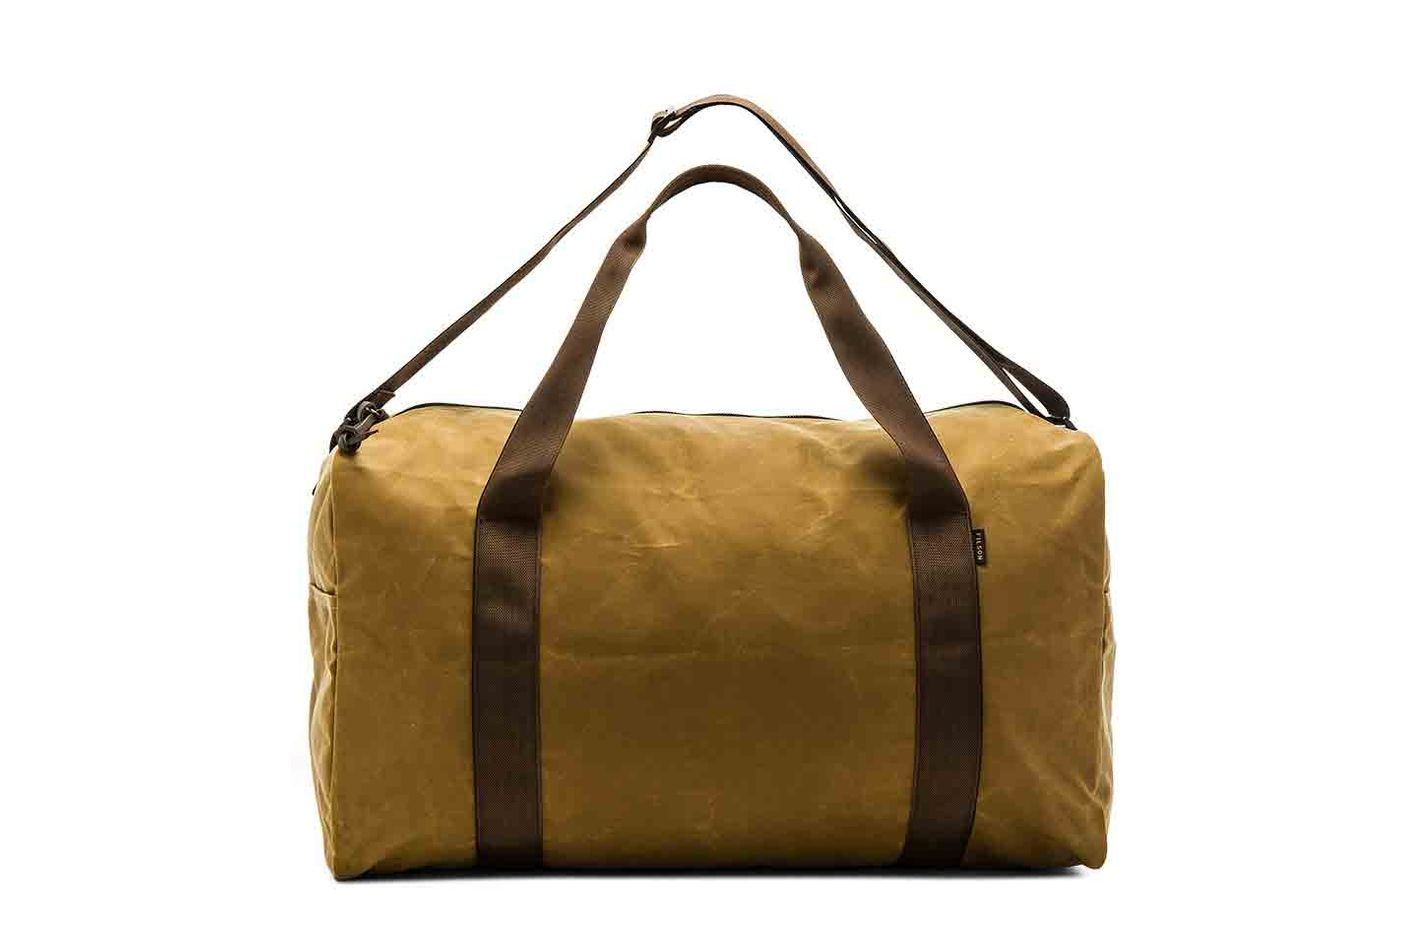 Filson Medium Field Duffle, Dark Tan and Brown